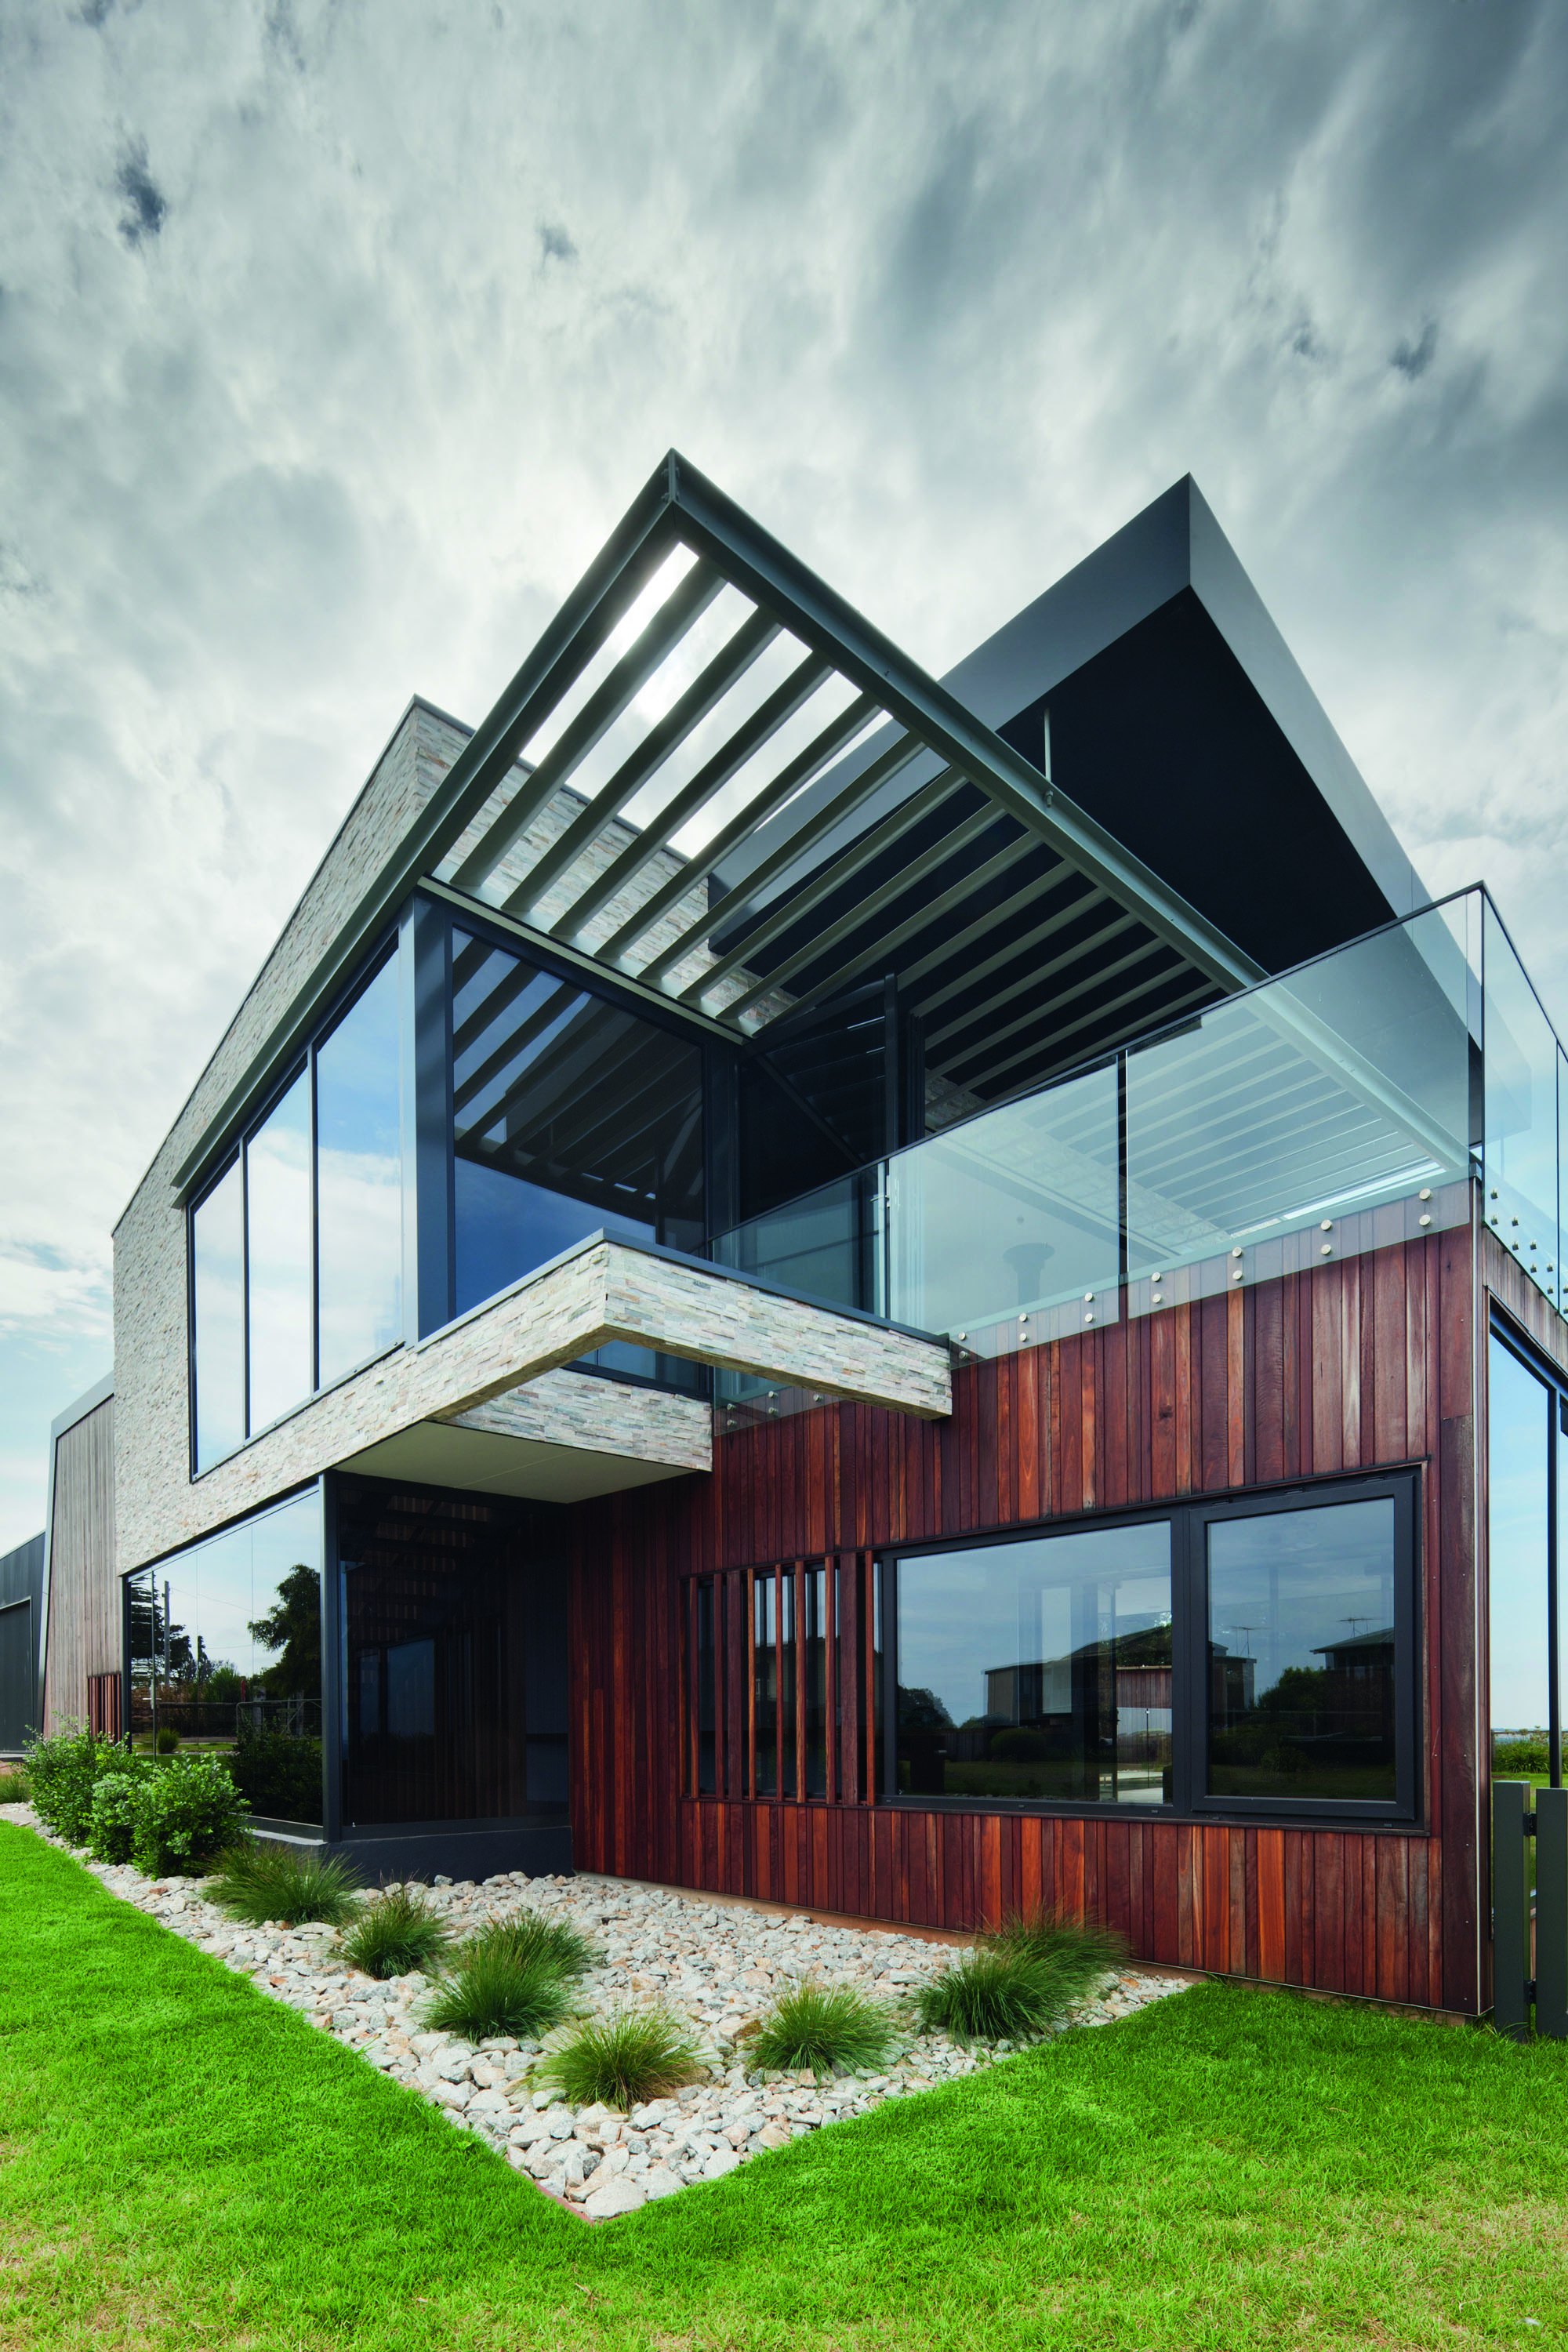 Grand Designs Australia: Black Box - the Rhyll House - house exterior - featured photo